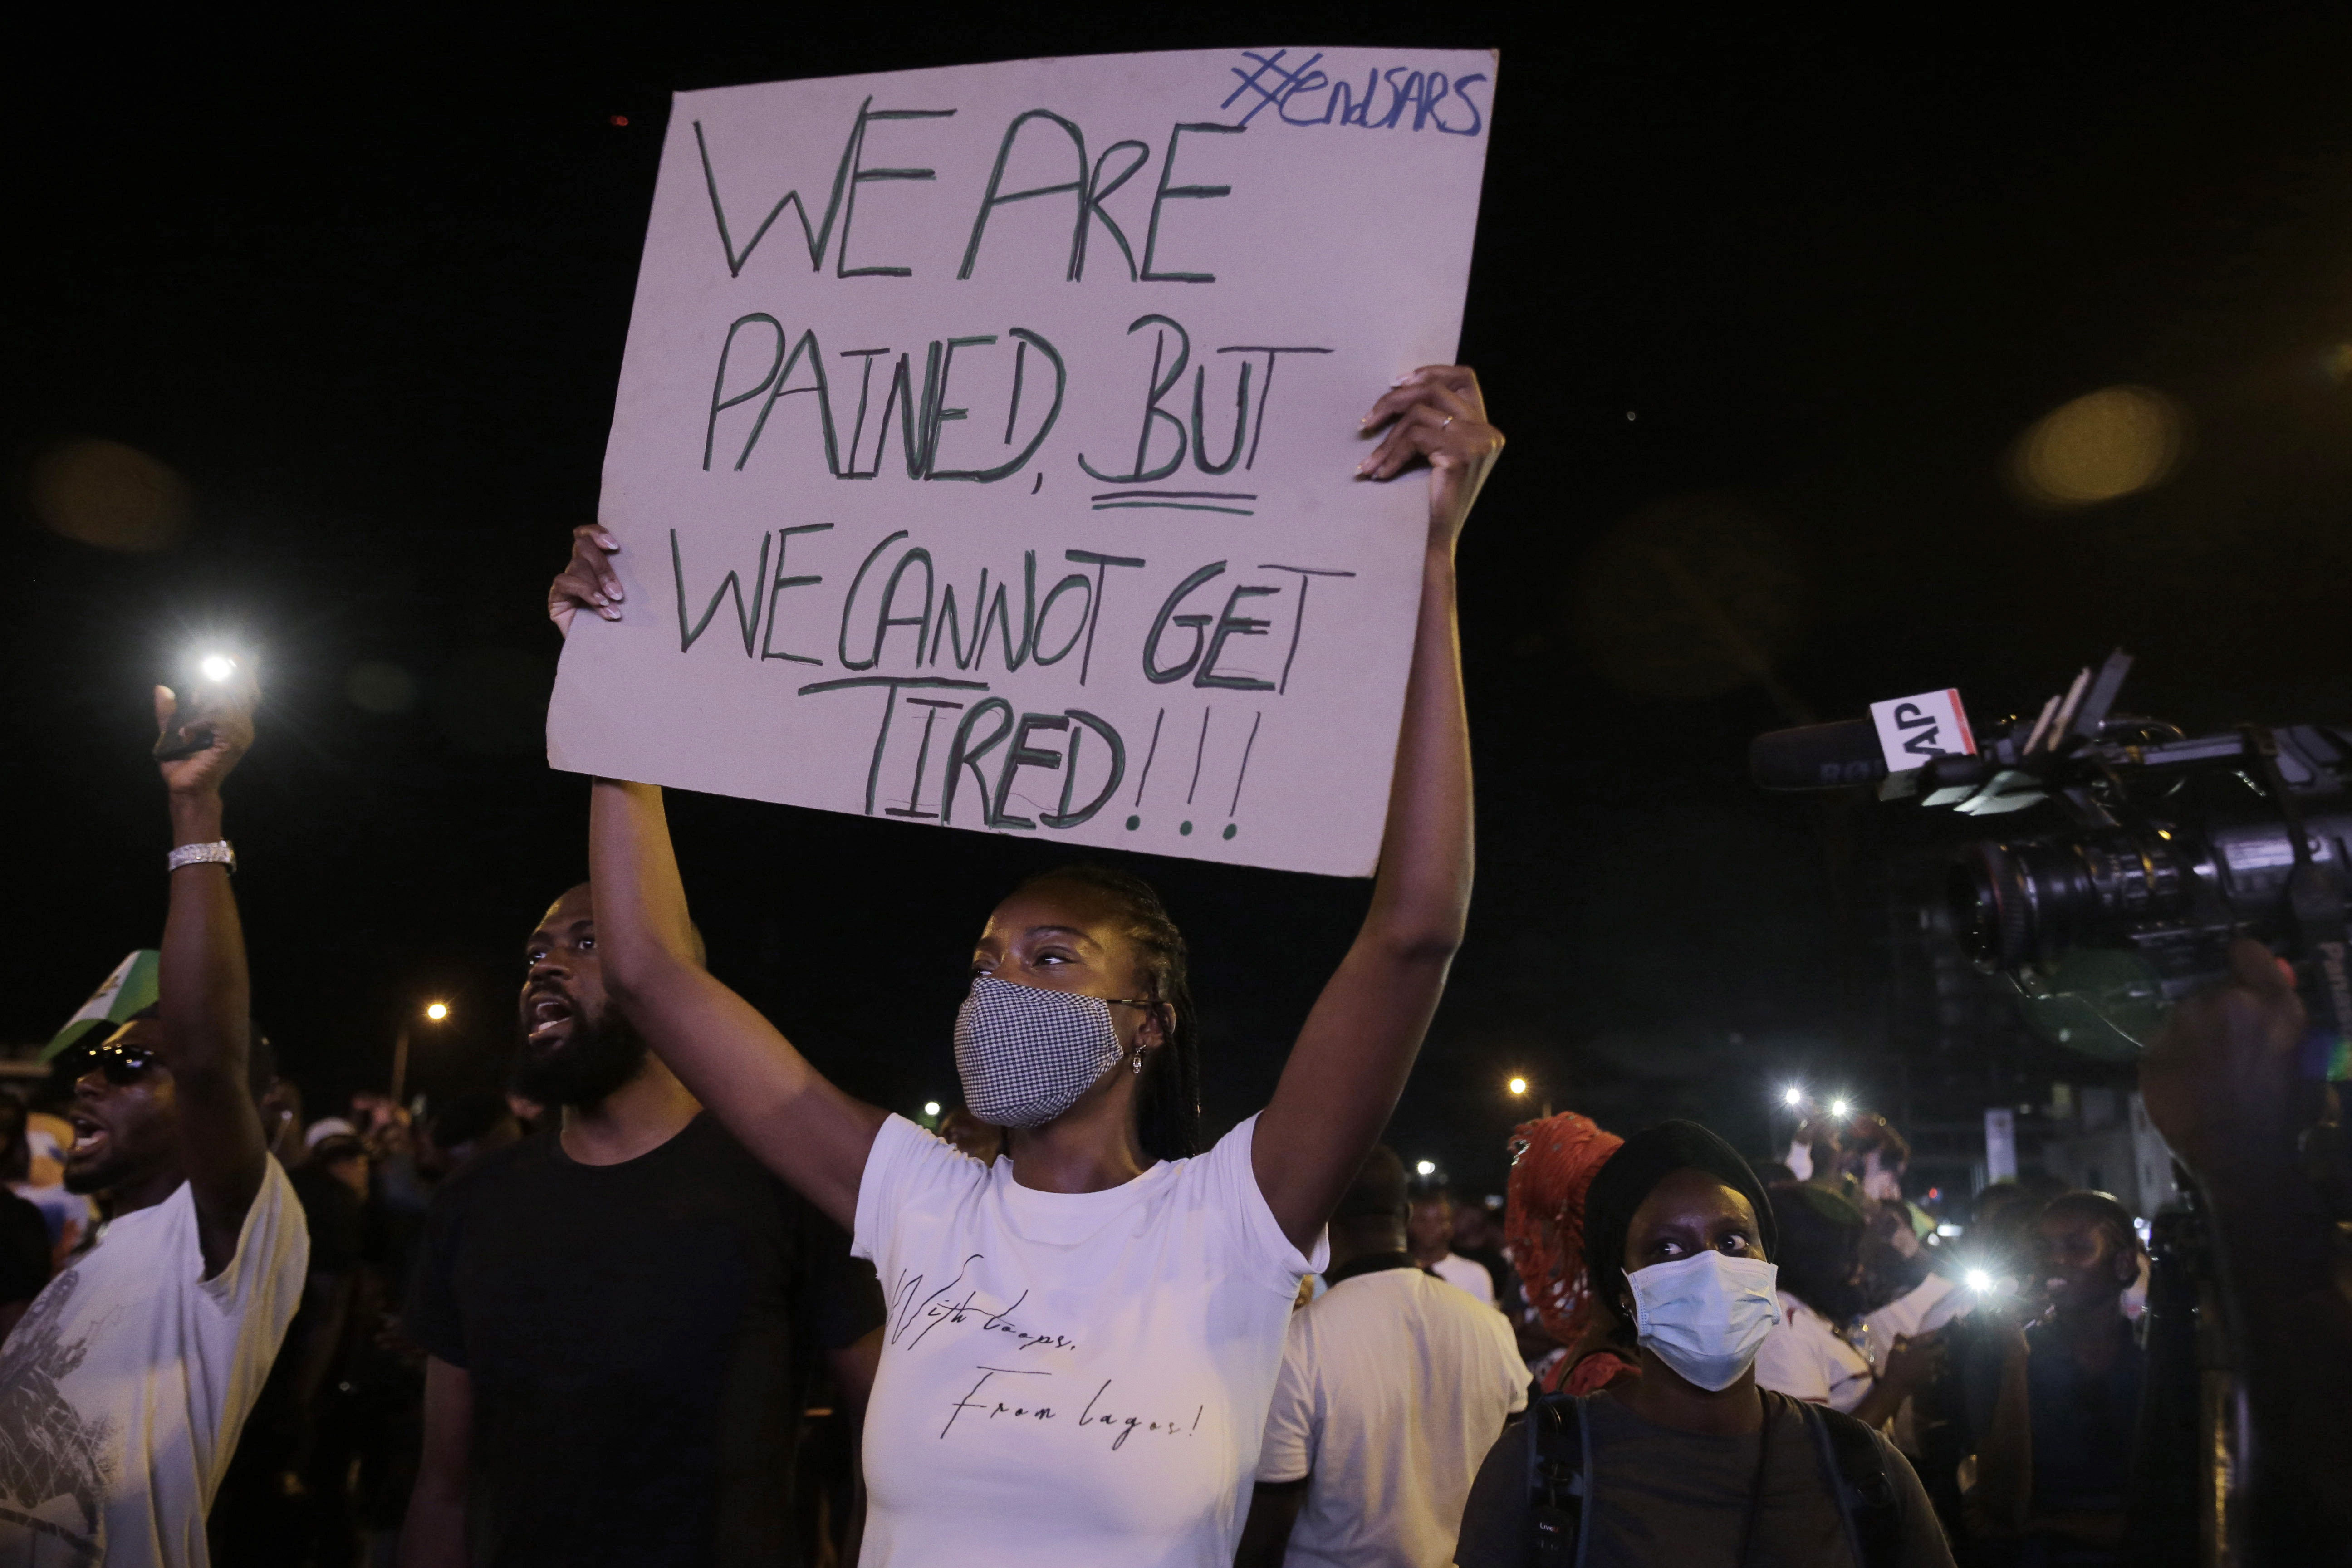 Nigerian soldiers fire at protesters, at least two hit